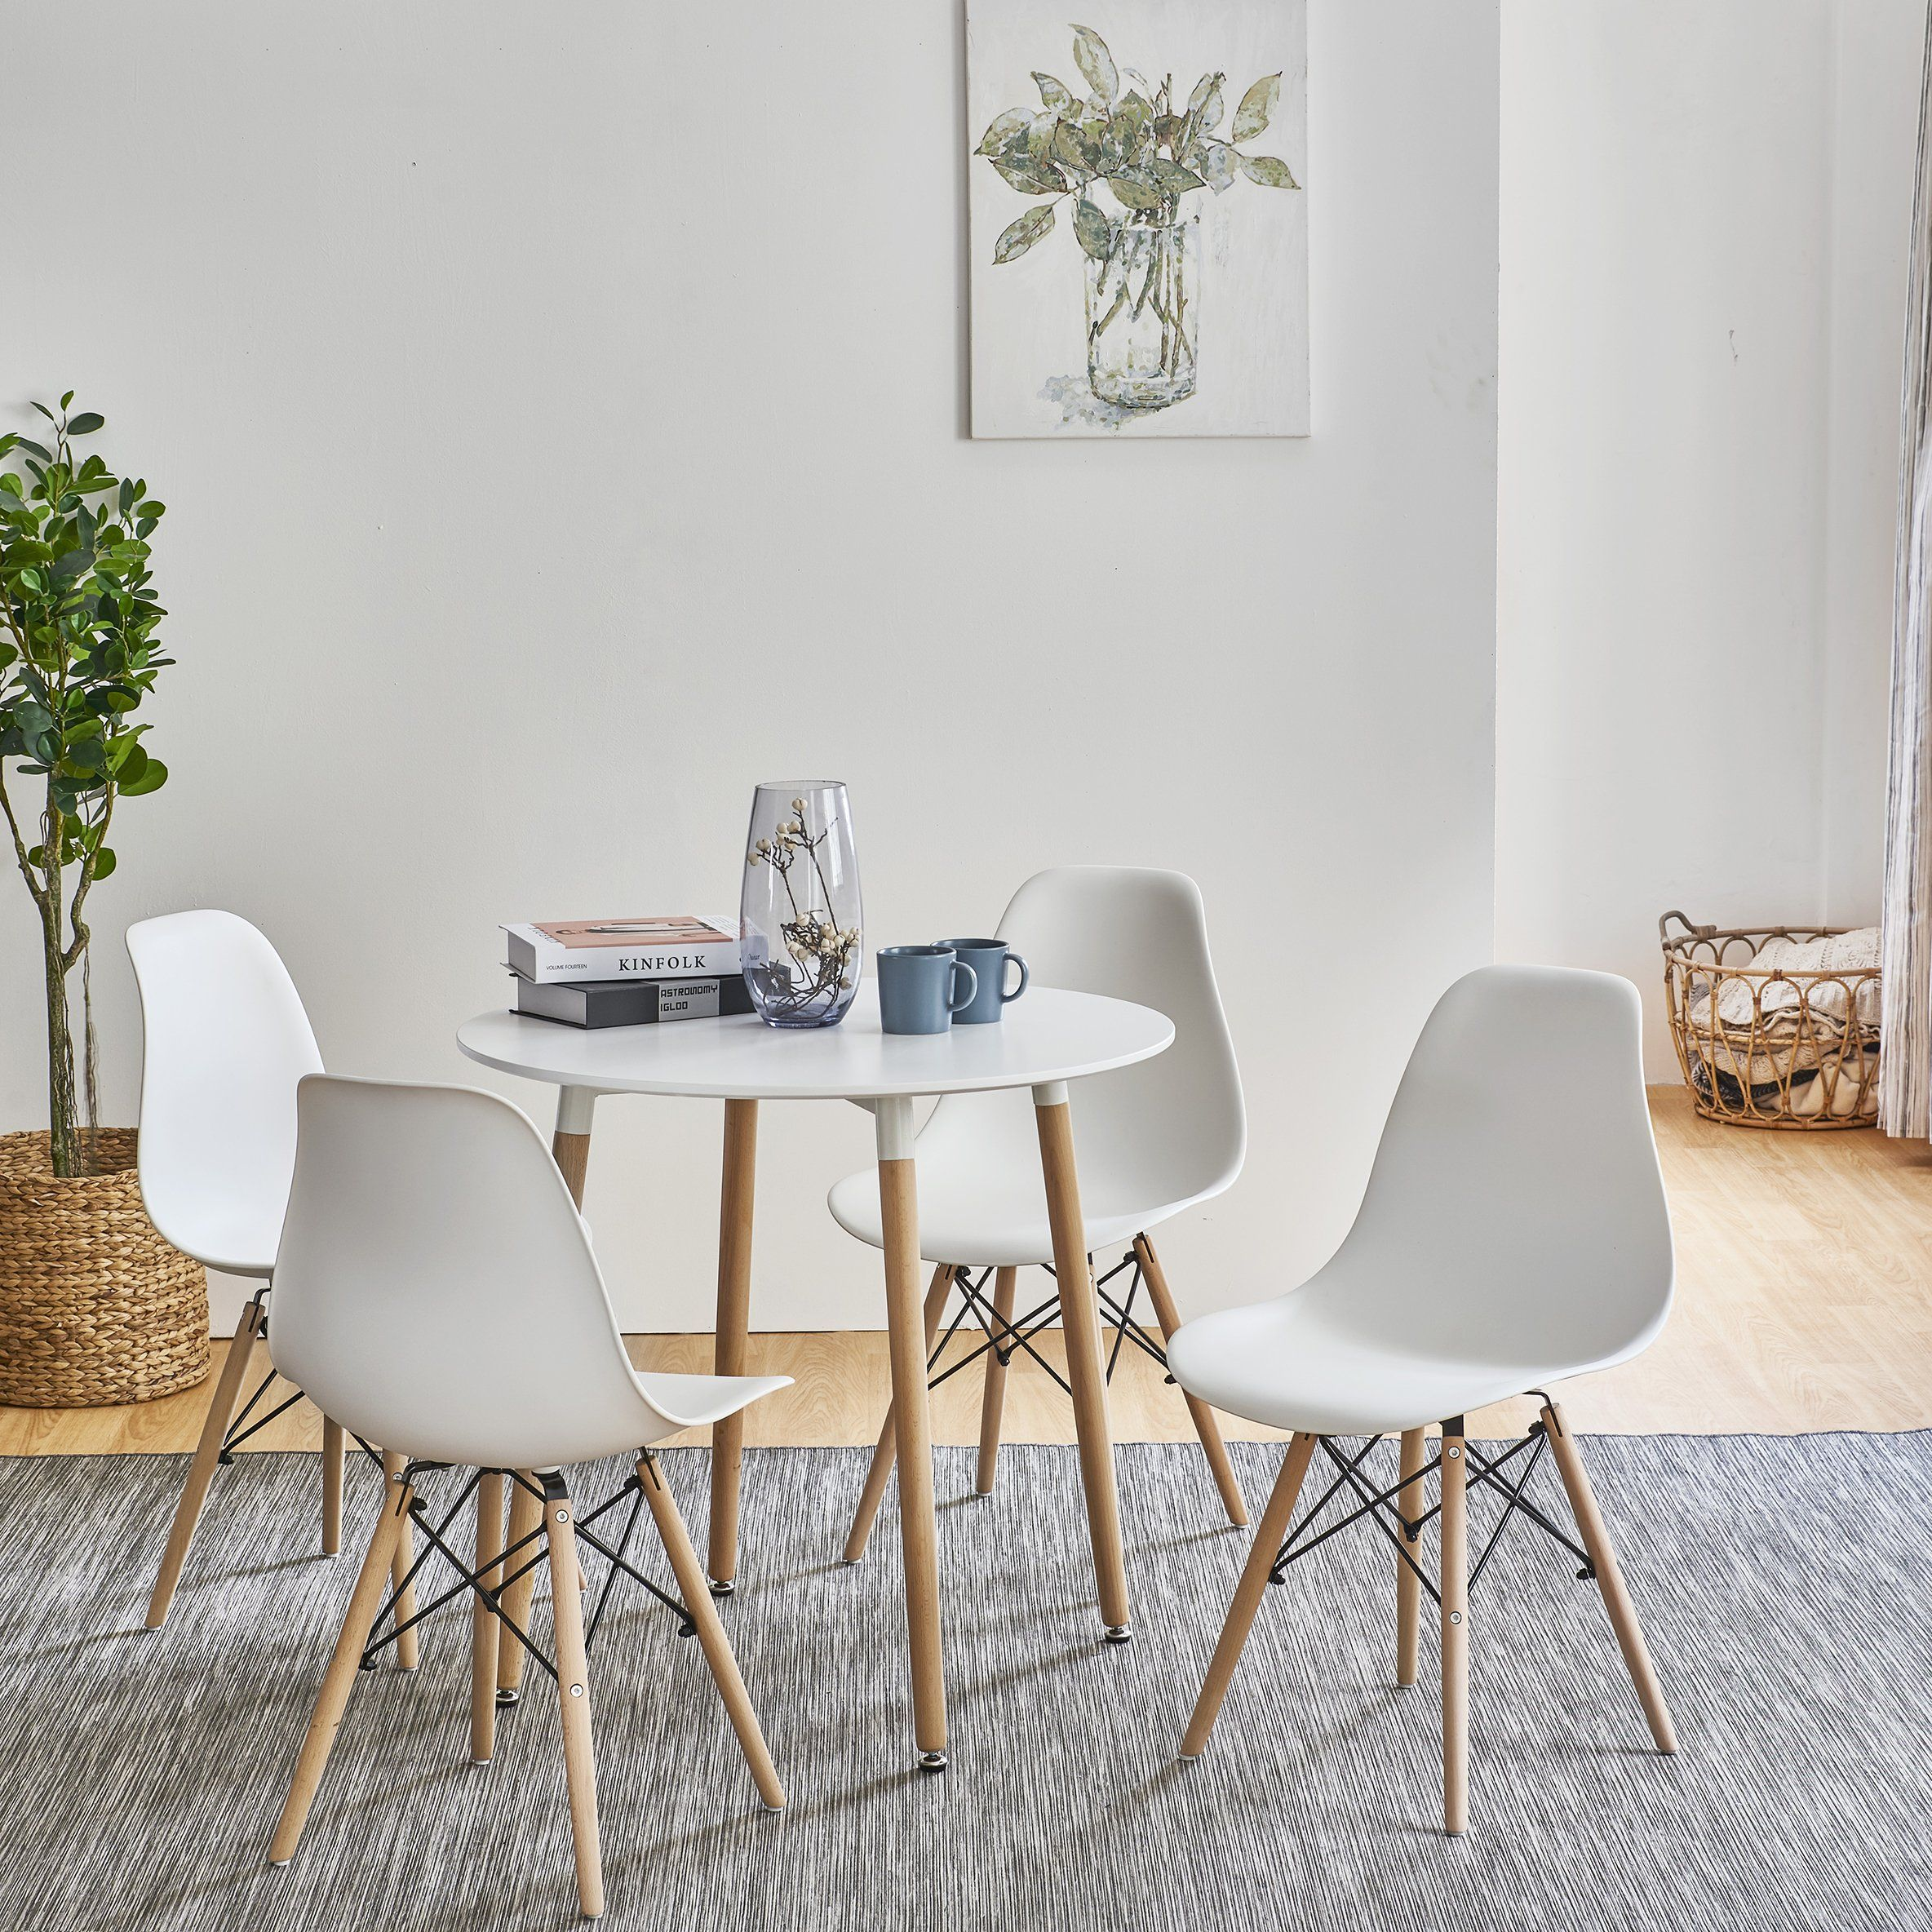 Inge Round Kitchen Table With 4 White Chairs Delivery On Or Before 2 Laura James